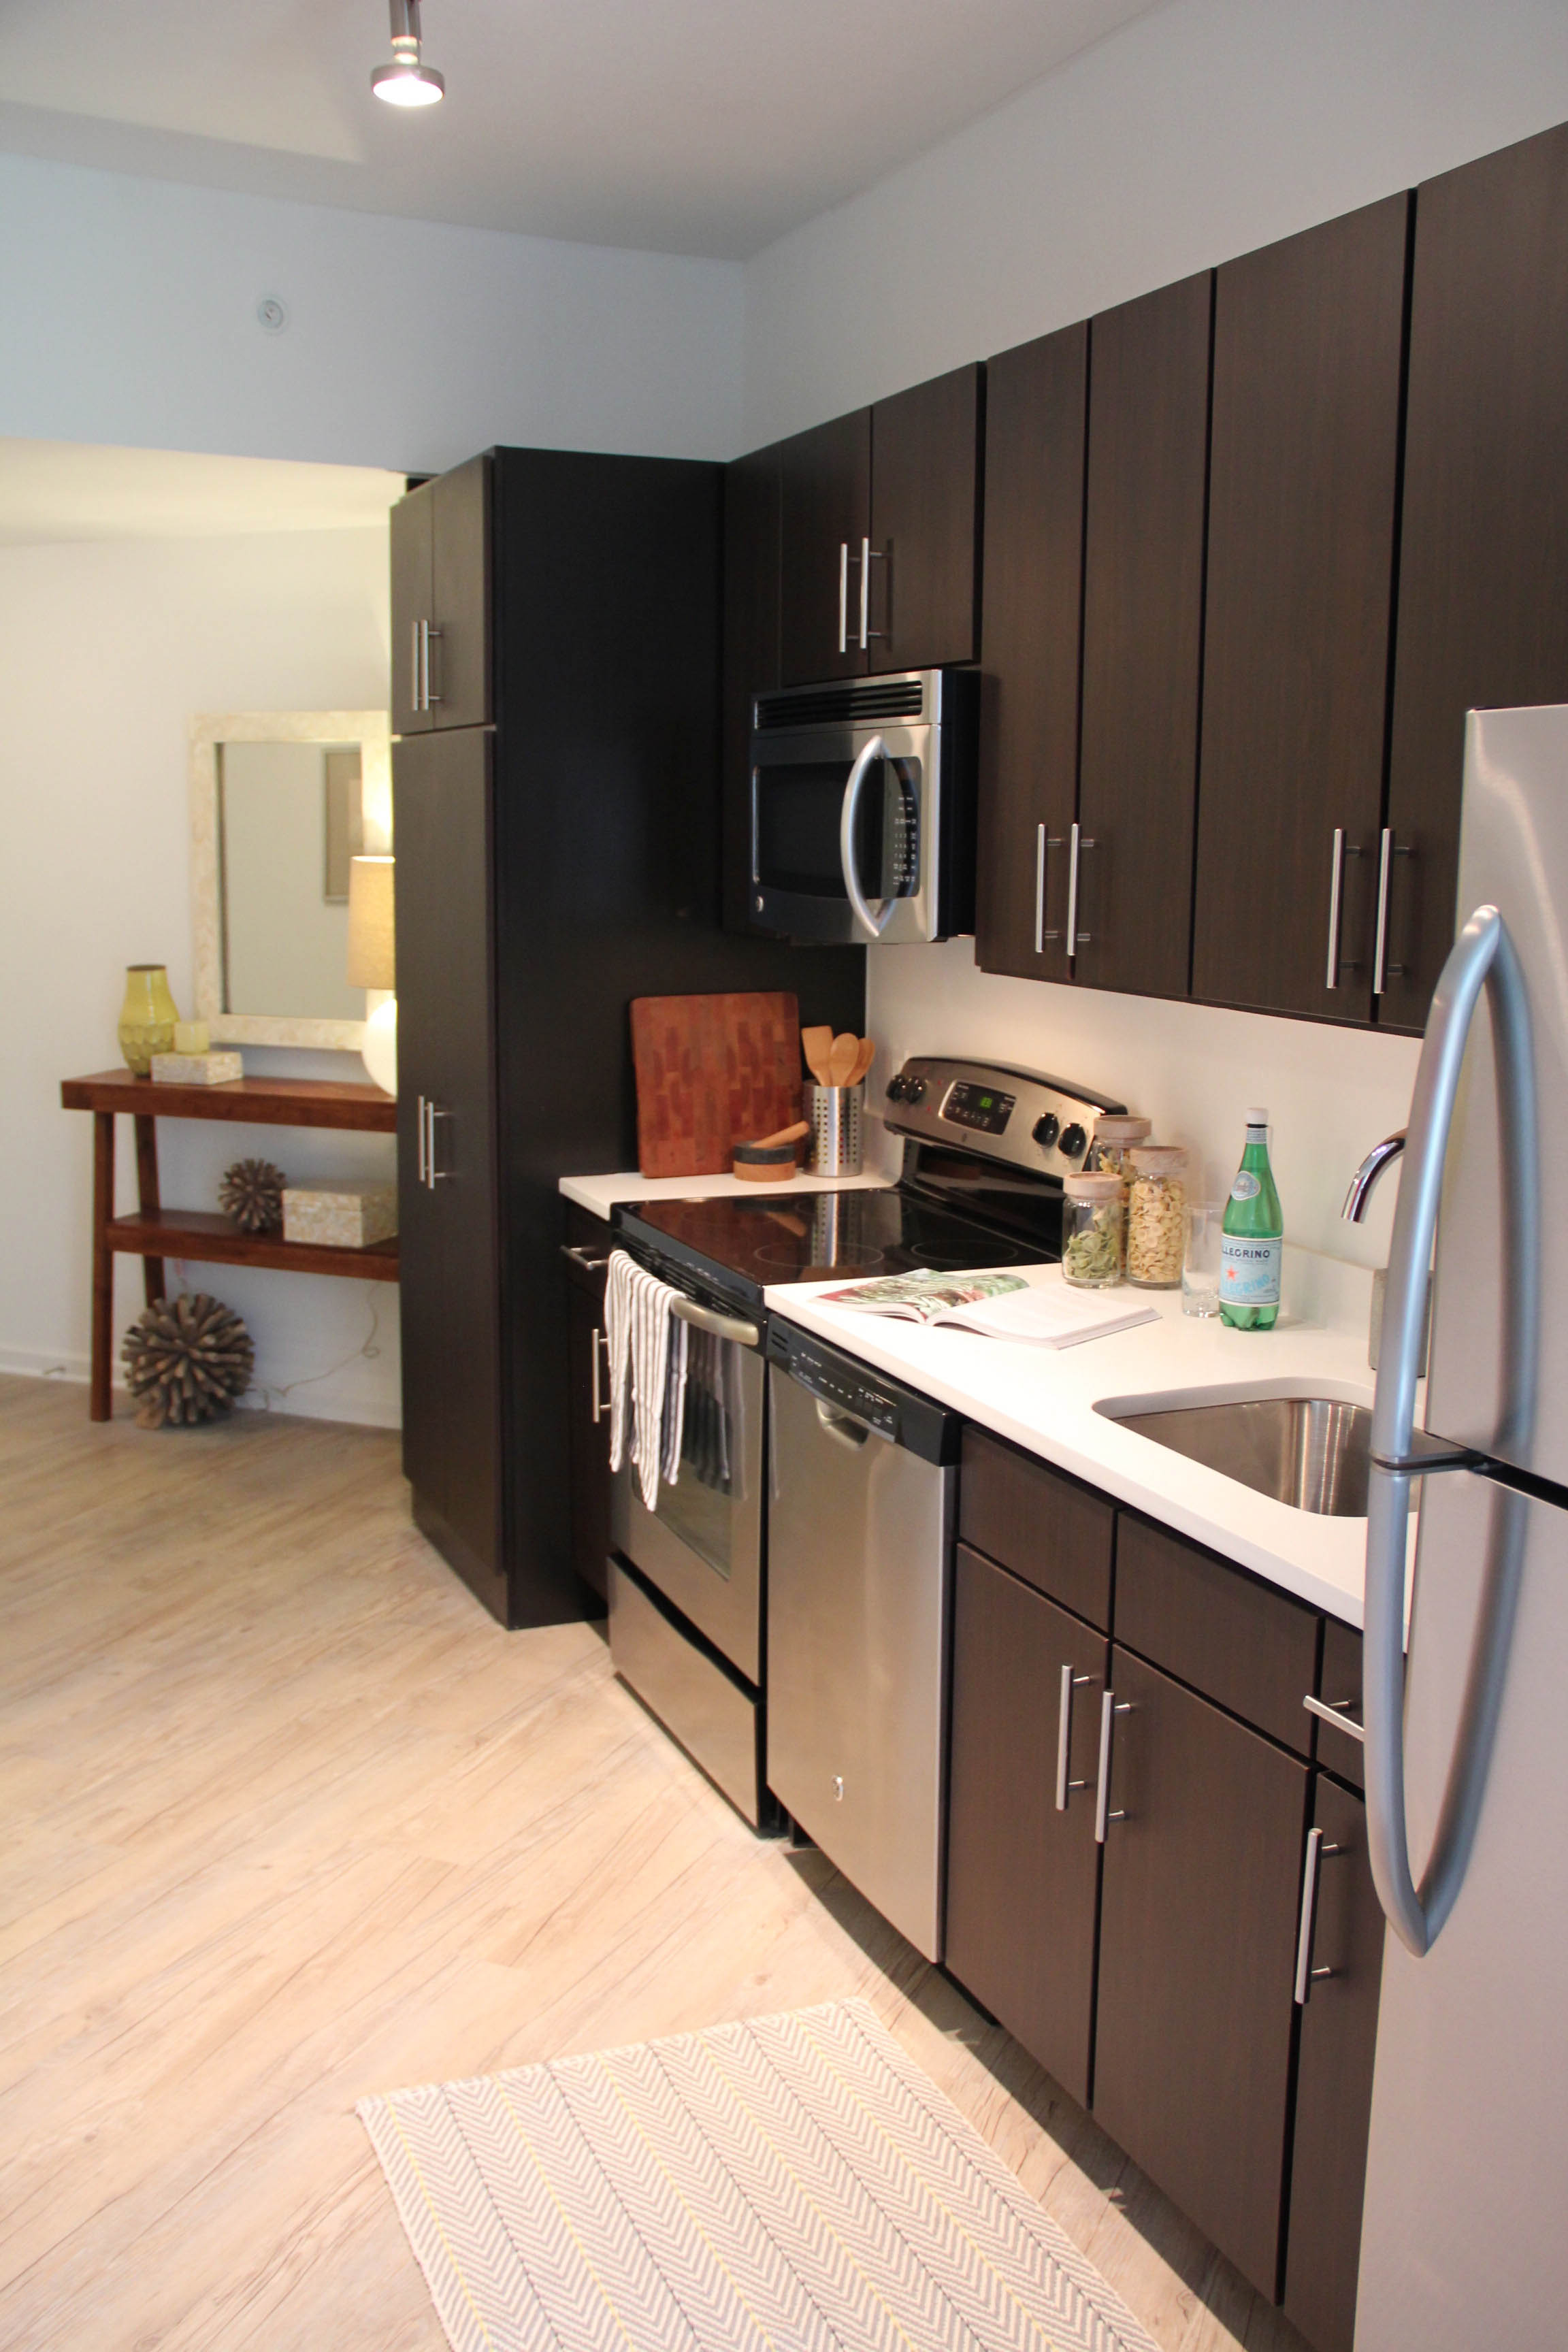 14w apartments open in u street neighborhood with designer for Kitchen modeler